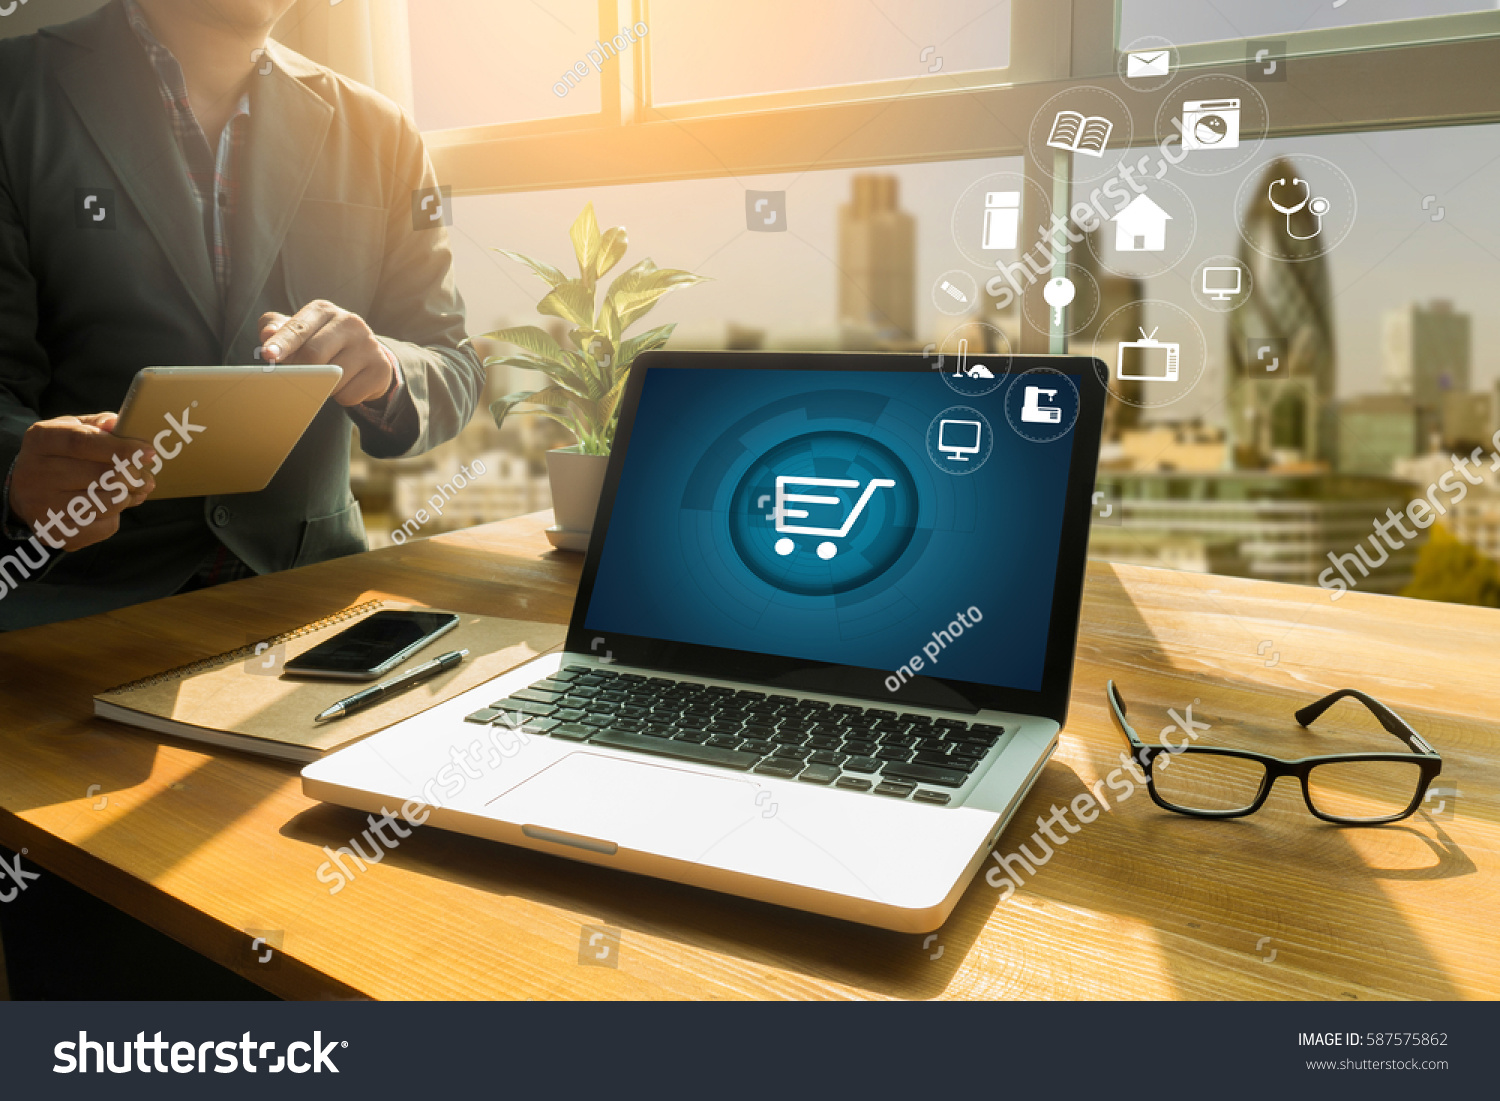 Business people use Technology E-commerce Internet Global Marketing Purchasing Plan and Bank Concept #587575862